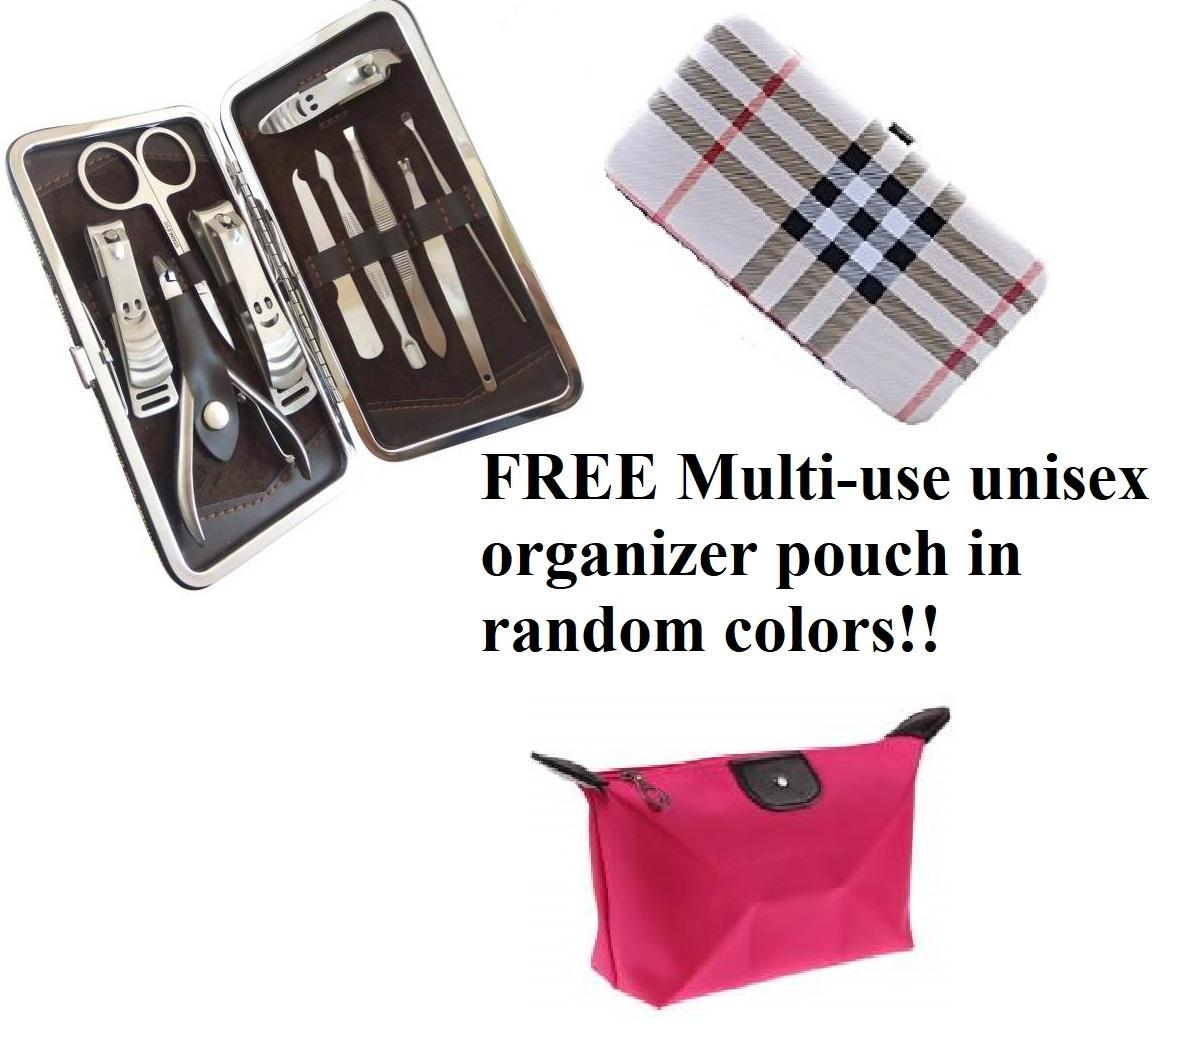 LILIs - 1 x 10 in 1 Manicure and Pedicure set stainless!! FREE Multi-use unisex organizer pouch in random colors!! Philippines